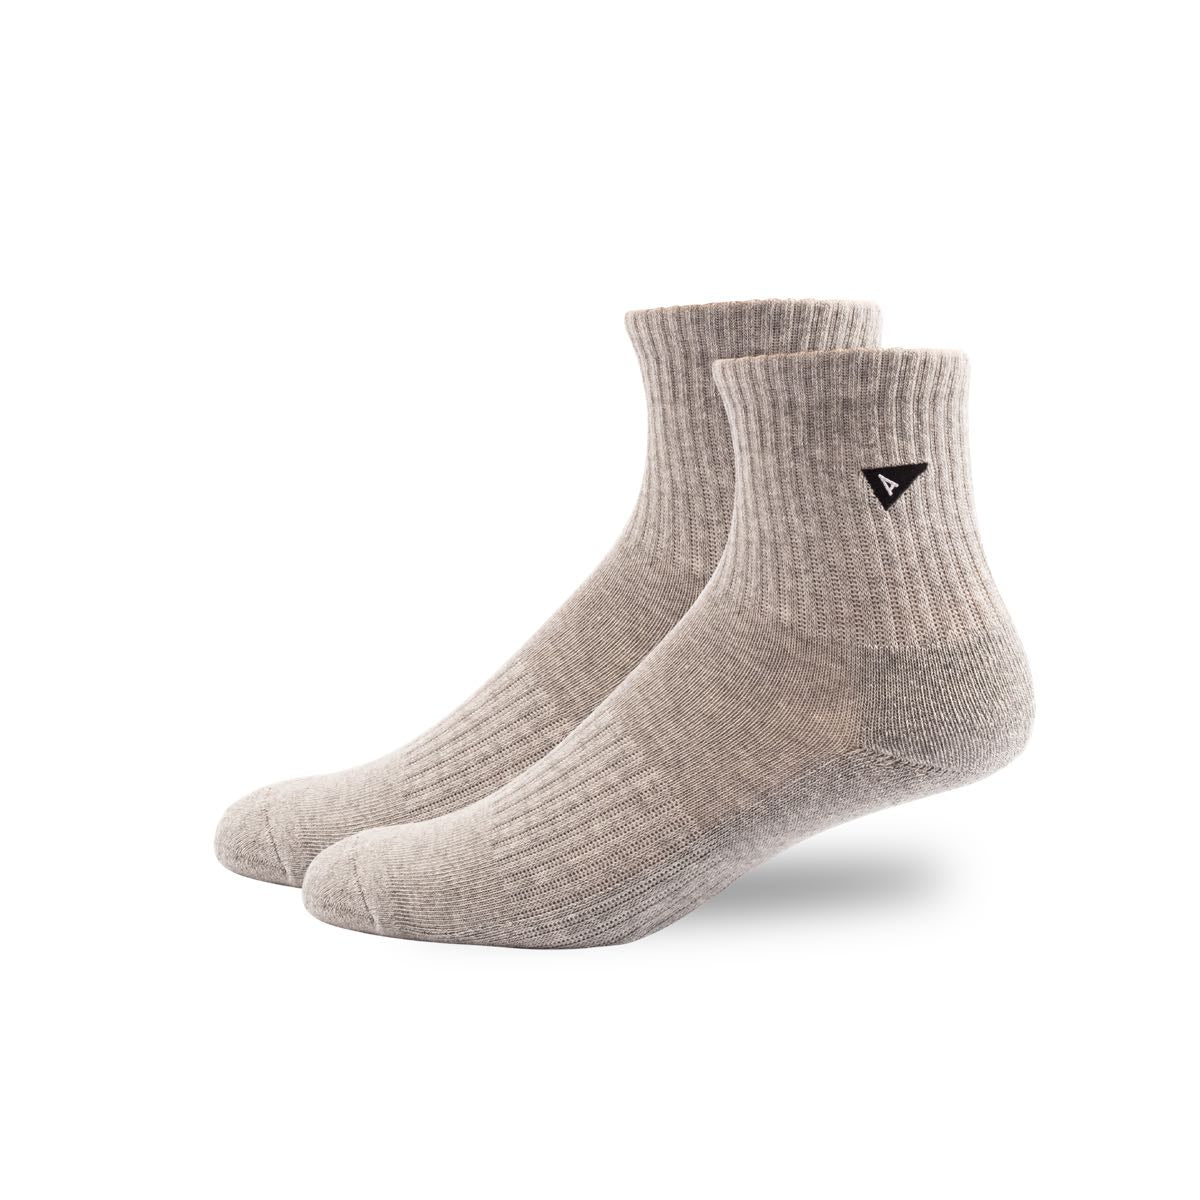 Arvin Goods Mini Crew Plant Dye Socks - Grey image